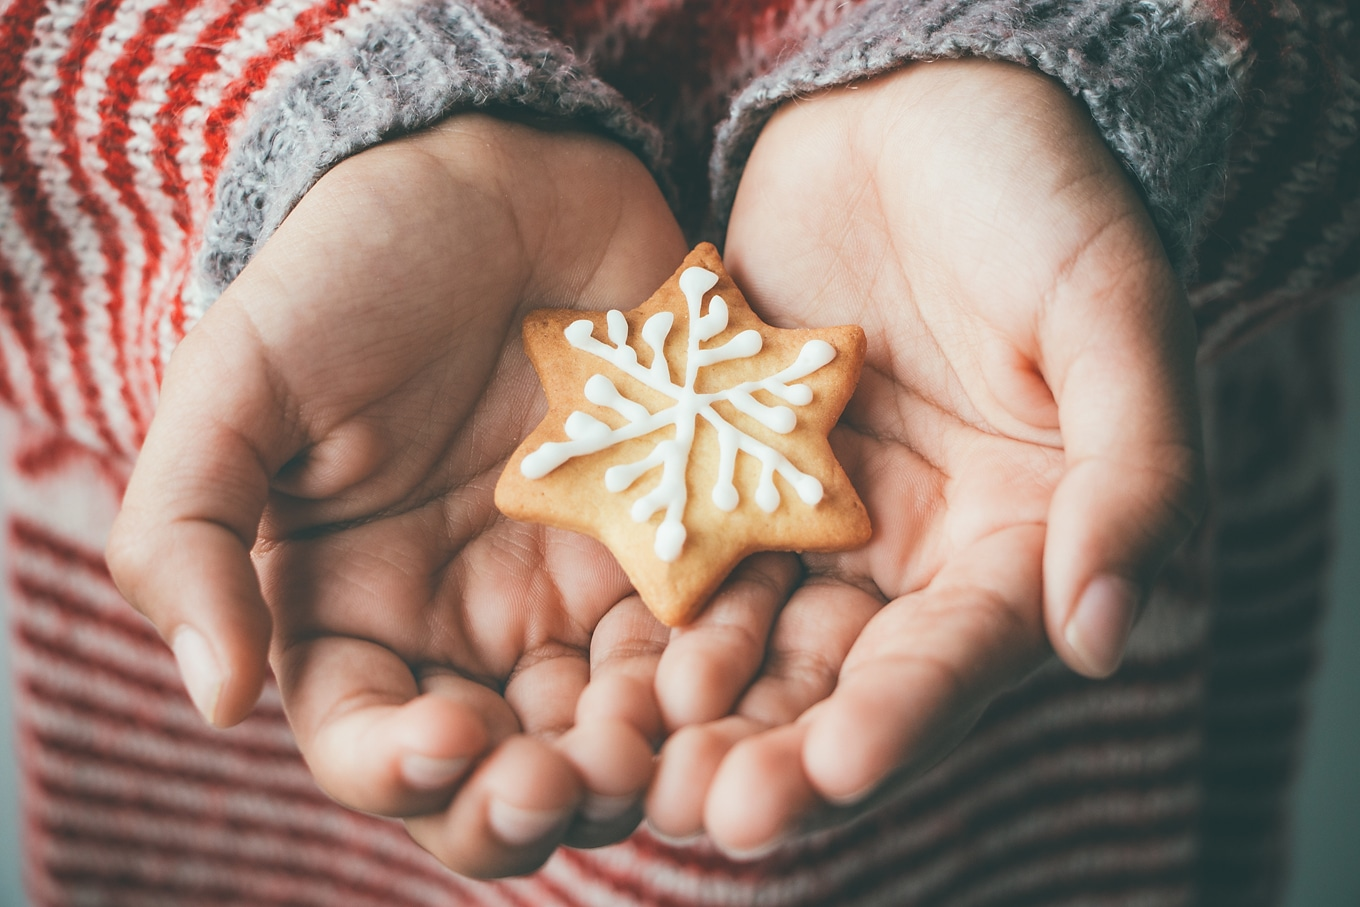 As we are bombarded by advertisements and wish lists this time of year, it can be difficult to stay focused on what really matters. The best holiday gifts for children—the gifts kids really want for Christmas—require no wrapping paper, ribbons, or money. But they do require a substantial investment.